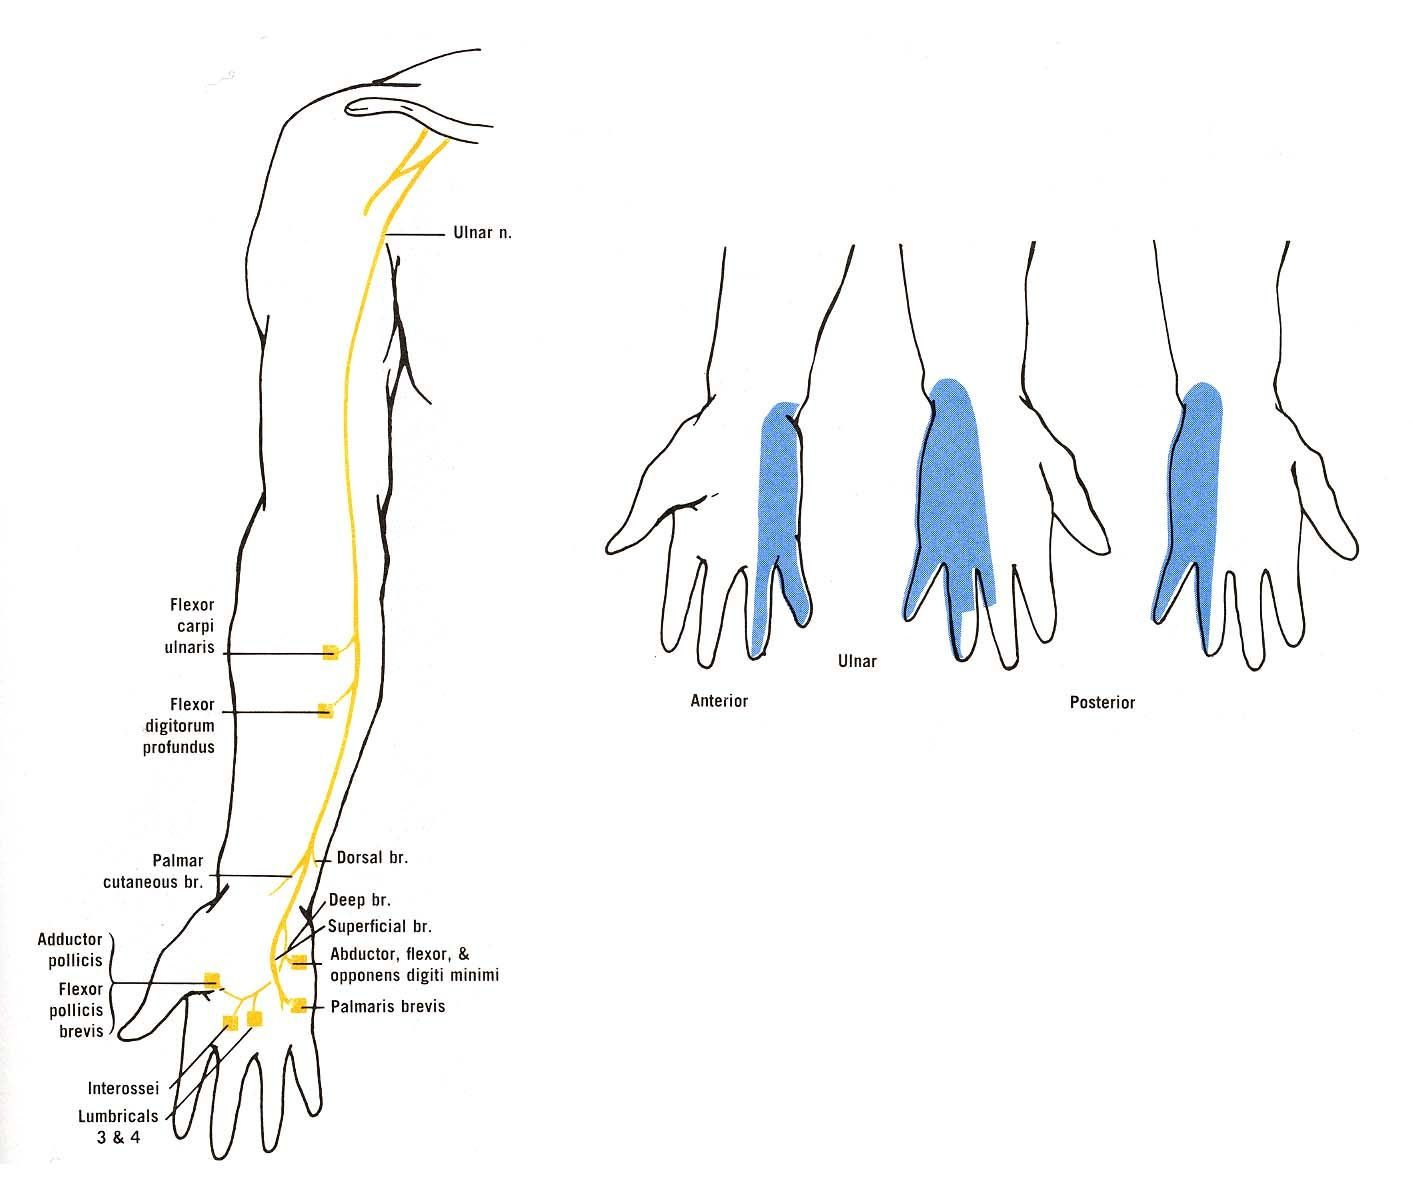 ulnar nerve diagram 2002 kia spectra fuel pump wiring of the muscular and cutaneous branches